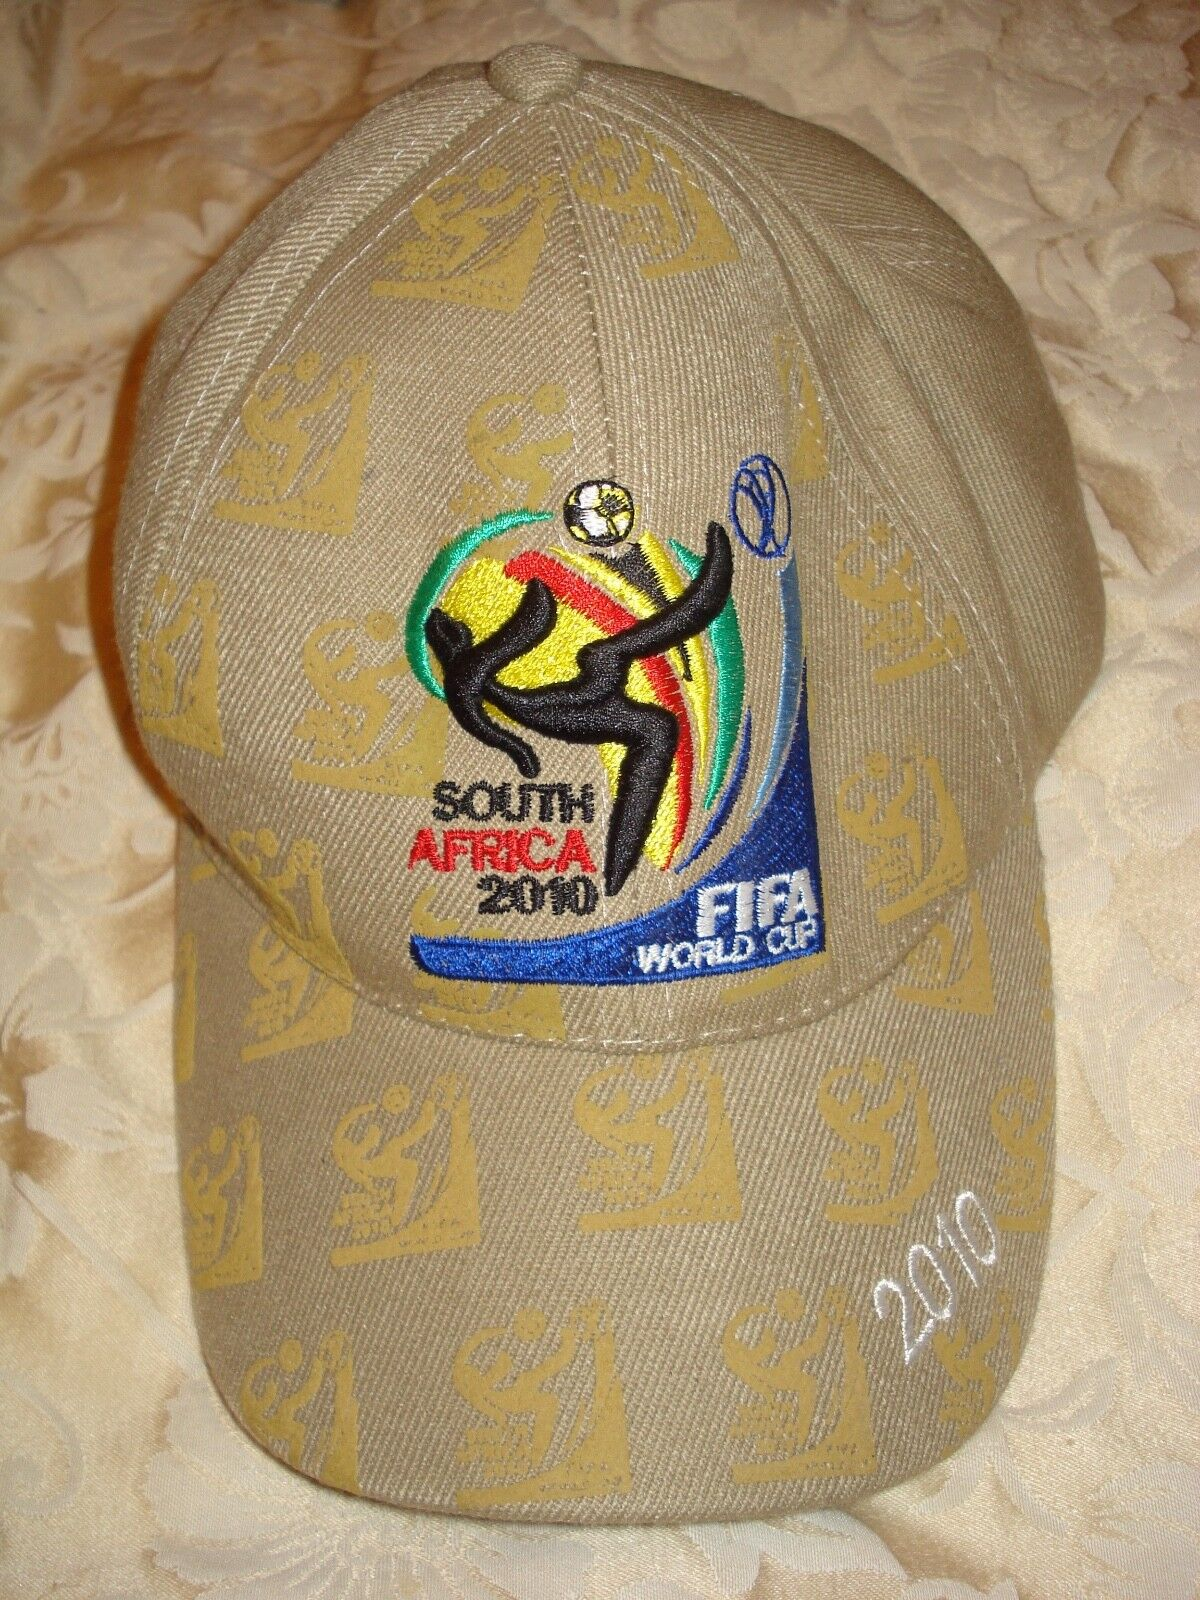 BN FIFA WORLD CUP CAP - SOUTH AFRICA 2010